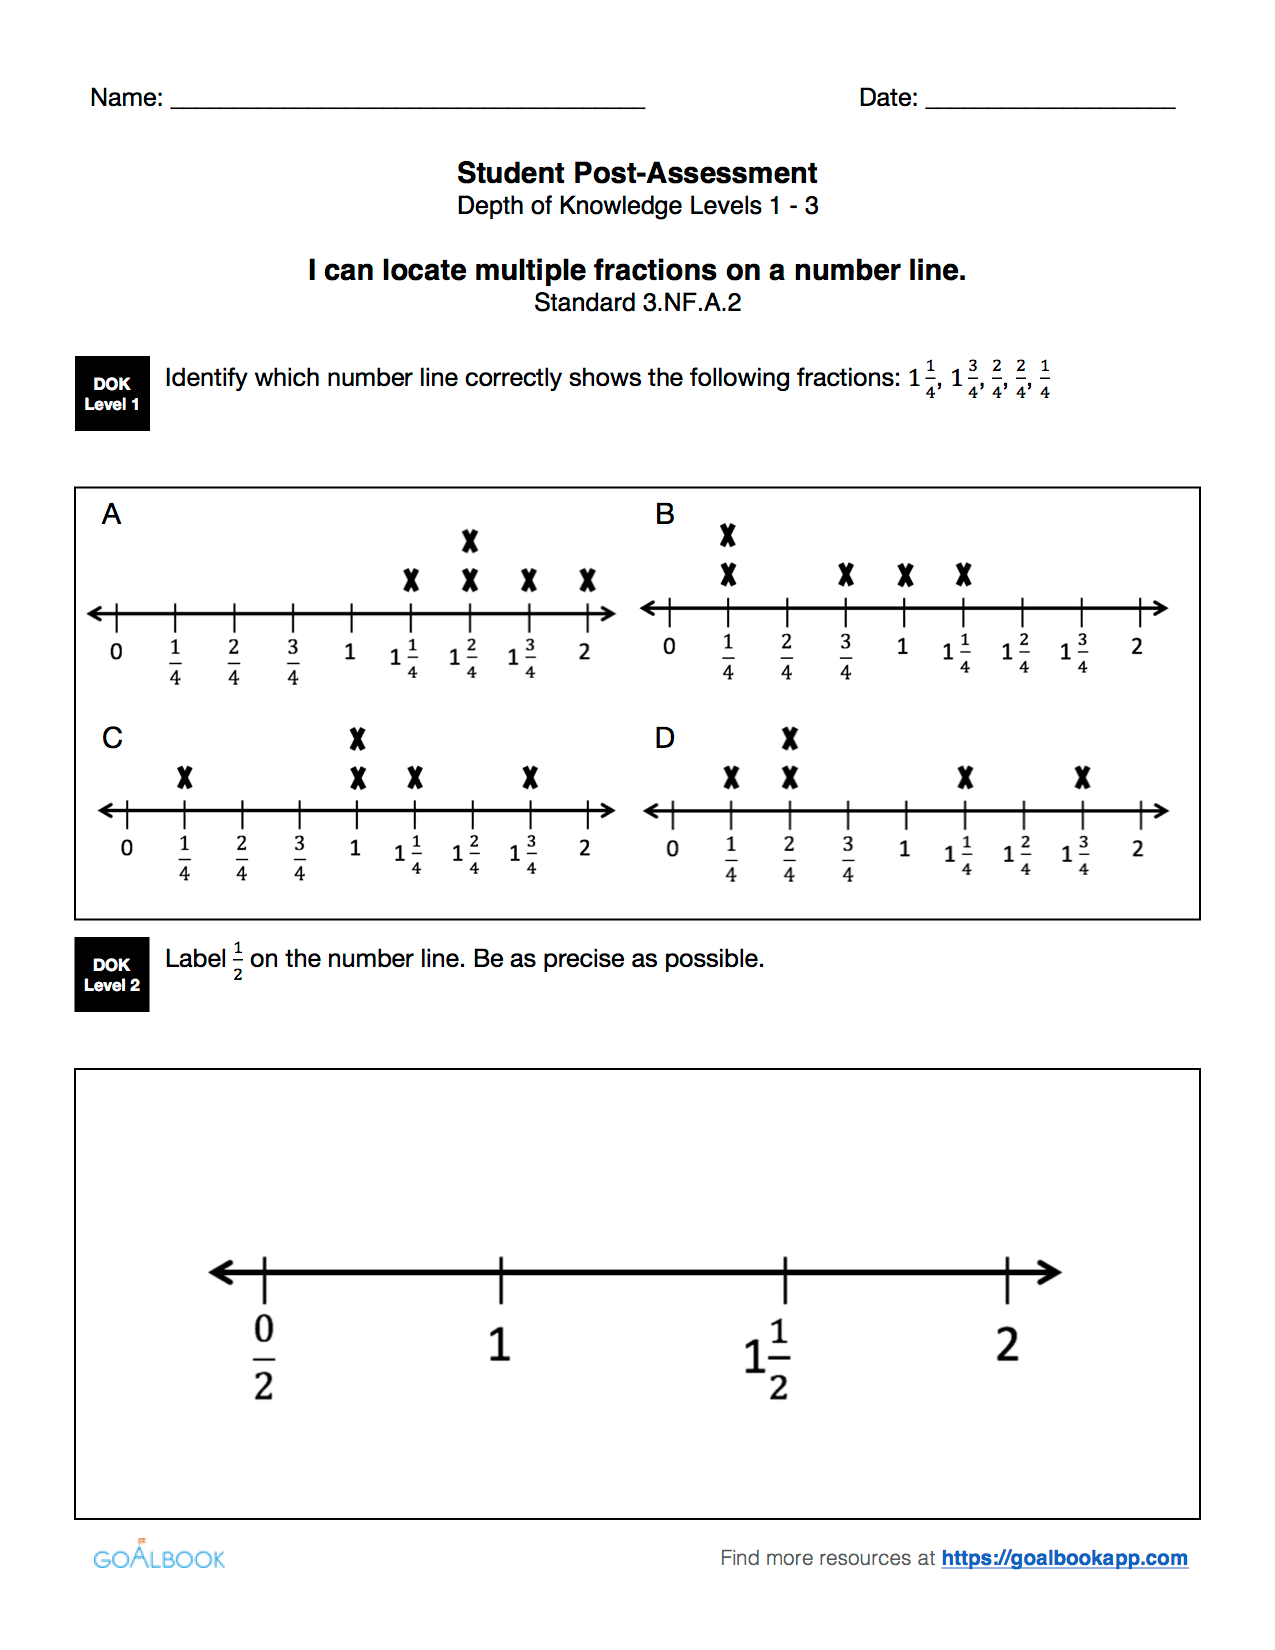 3 Nf 2 Fractions And Number Lines